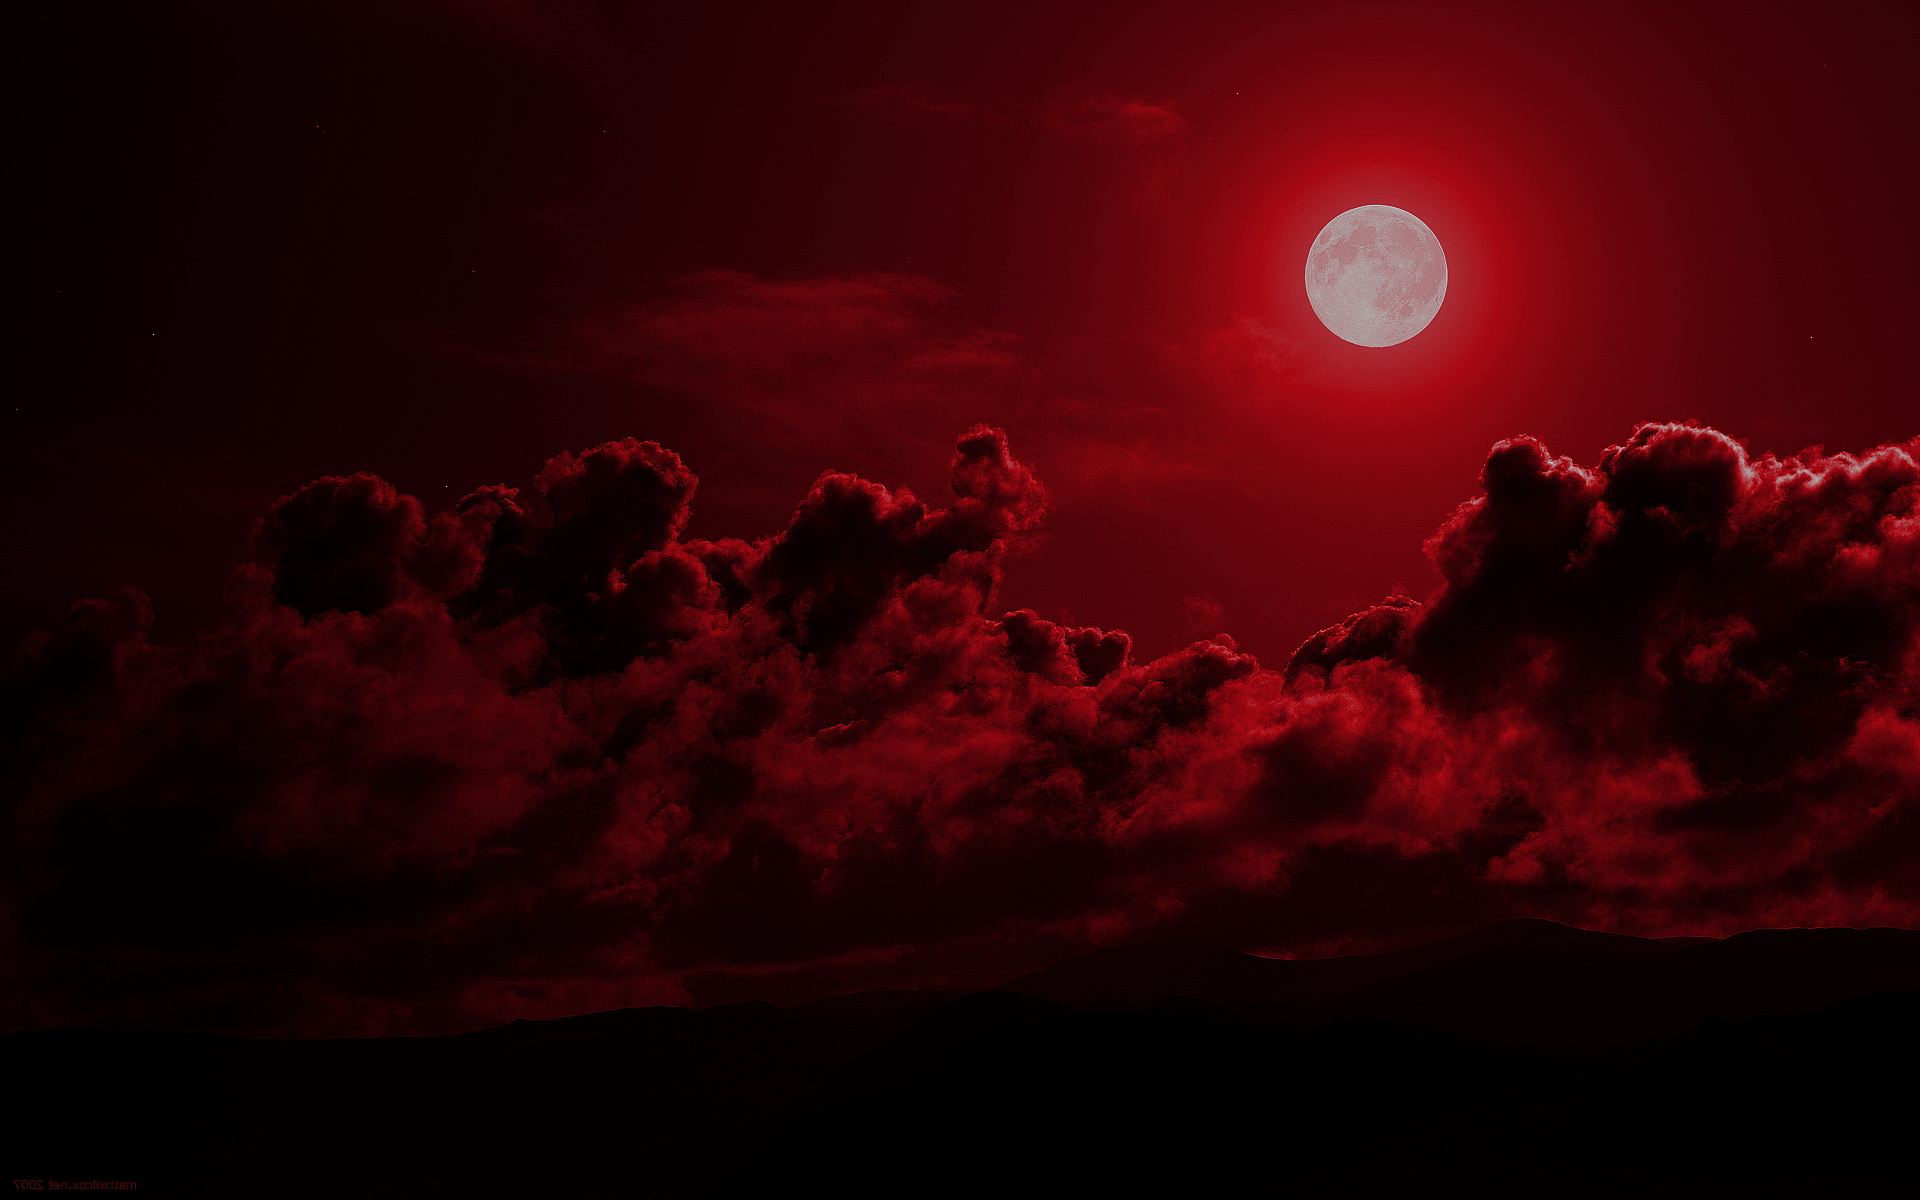 Red moon night